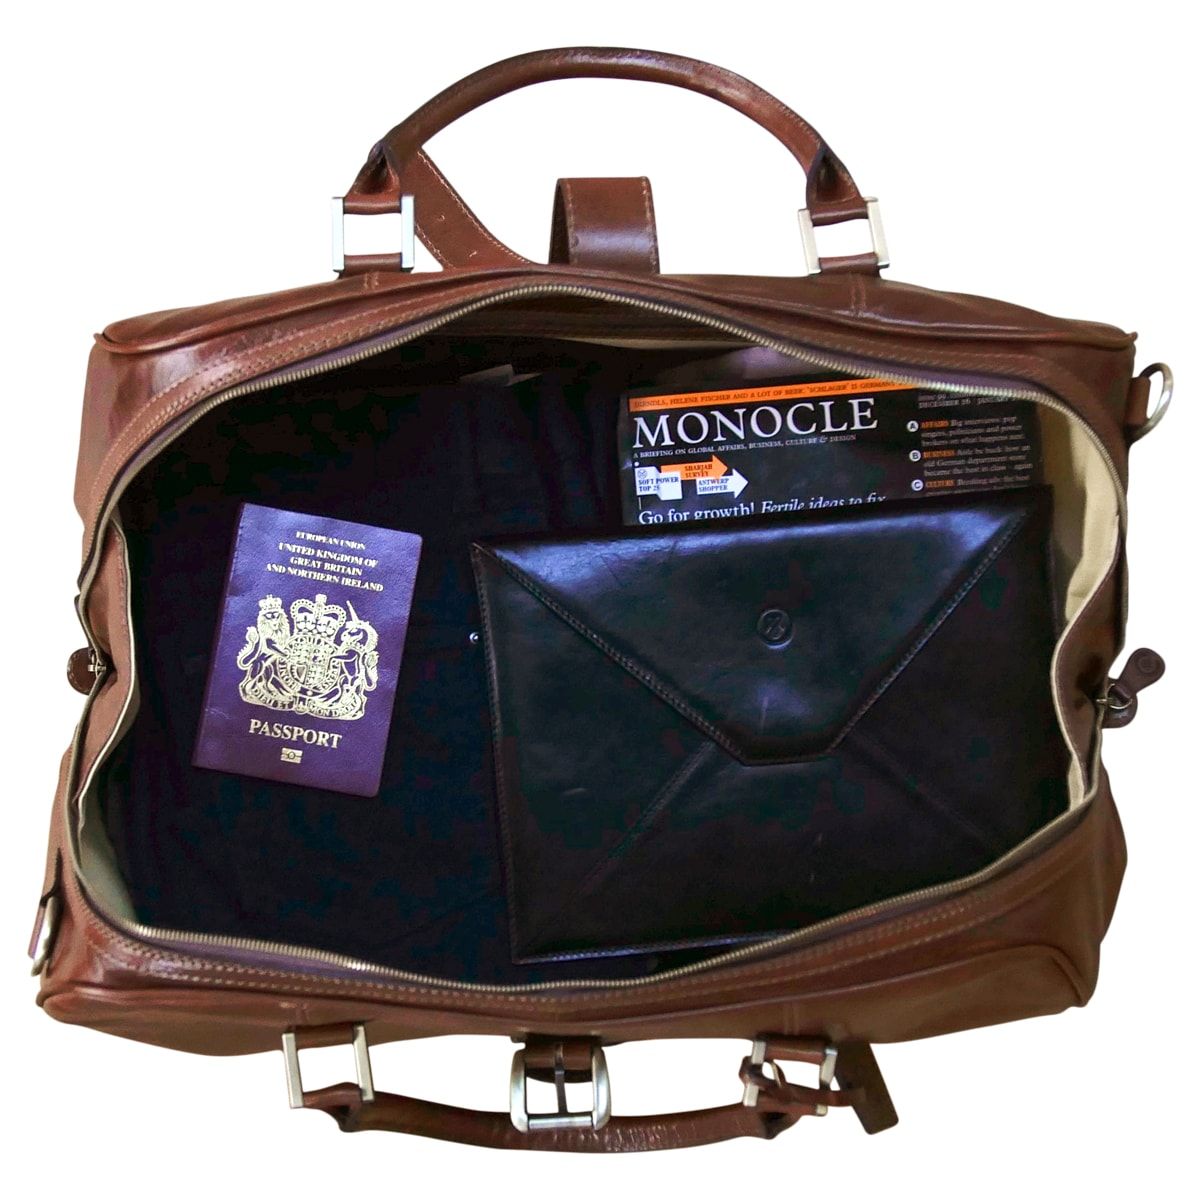 Image 7 of the 'Farini' Black Veg-Tanned Leather Luxury Hand Luggage